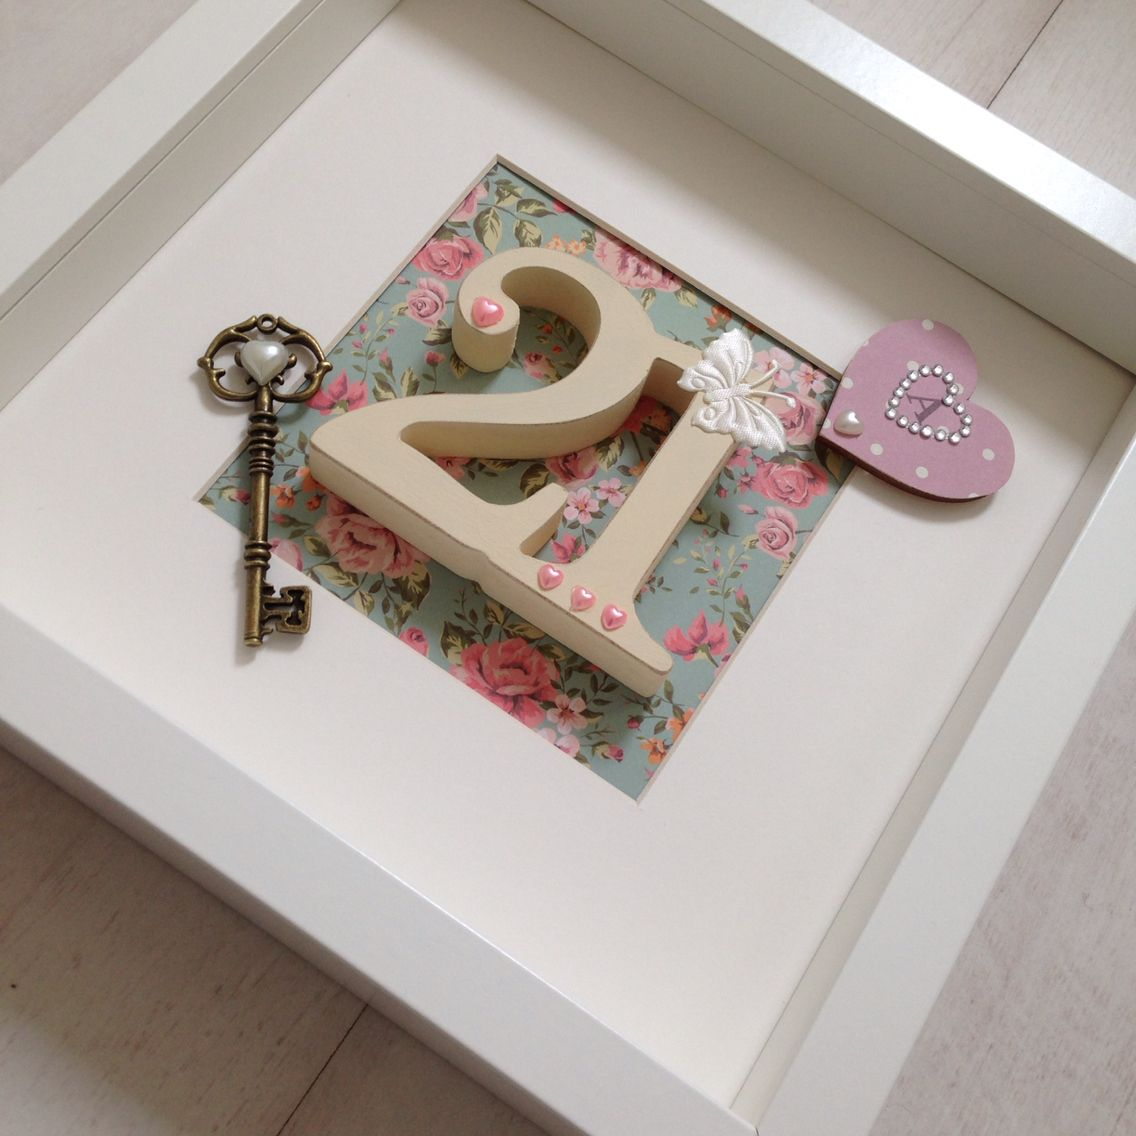 Handcrafted Personalised 21st Birthday Keepsake In A Vintage Style By JanieBcrafts